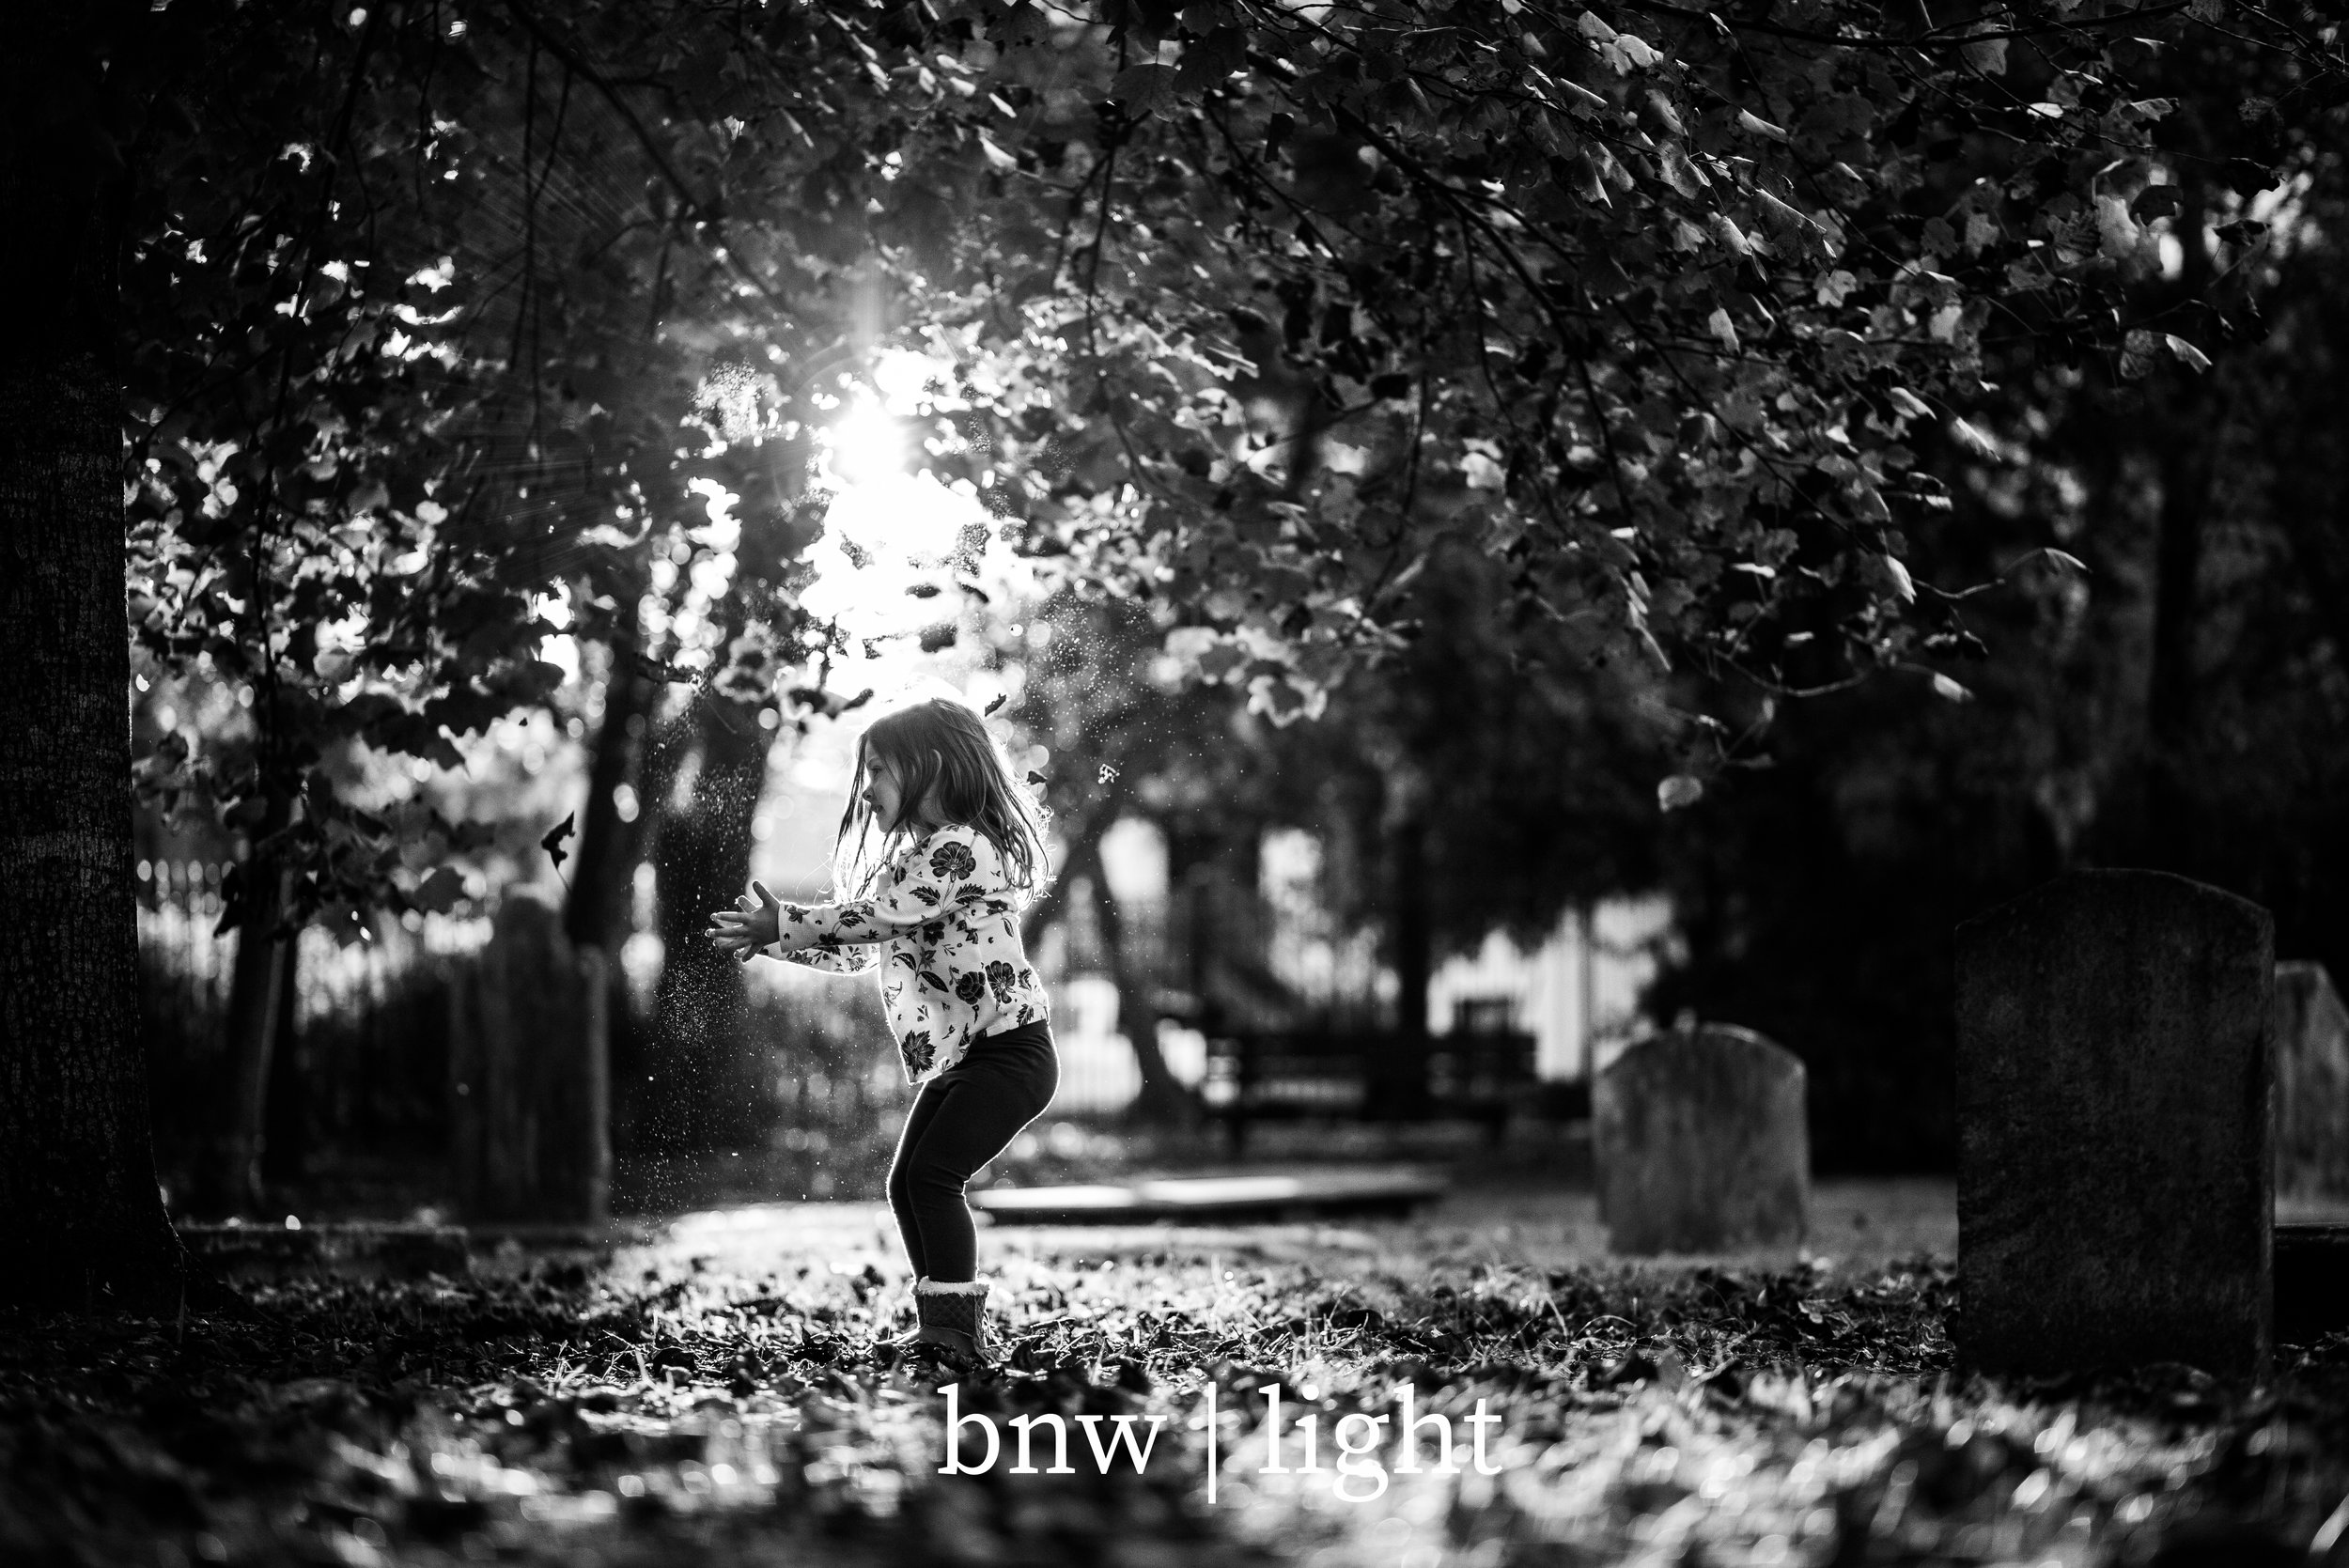 bnw | light   - If you love an emotive contrasty (that's a word right?!) bnw then you have come to the right place. This rich and bold preset will evoke emotion and add class to any image.